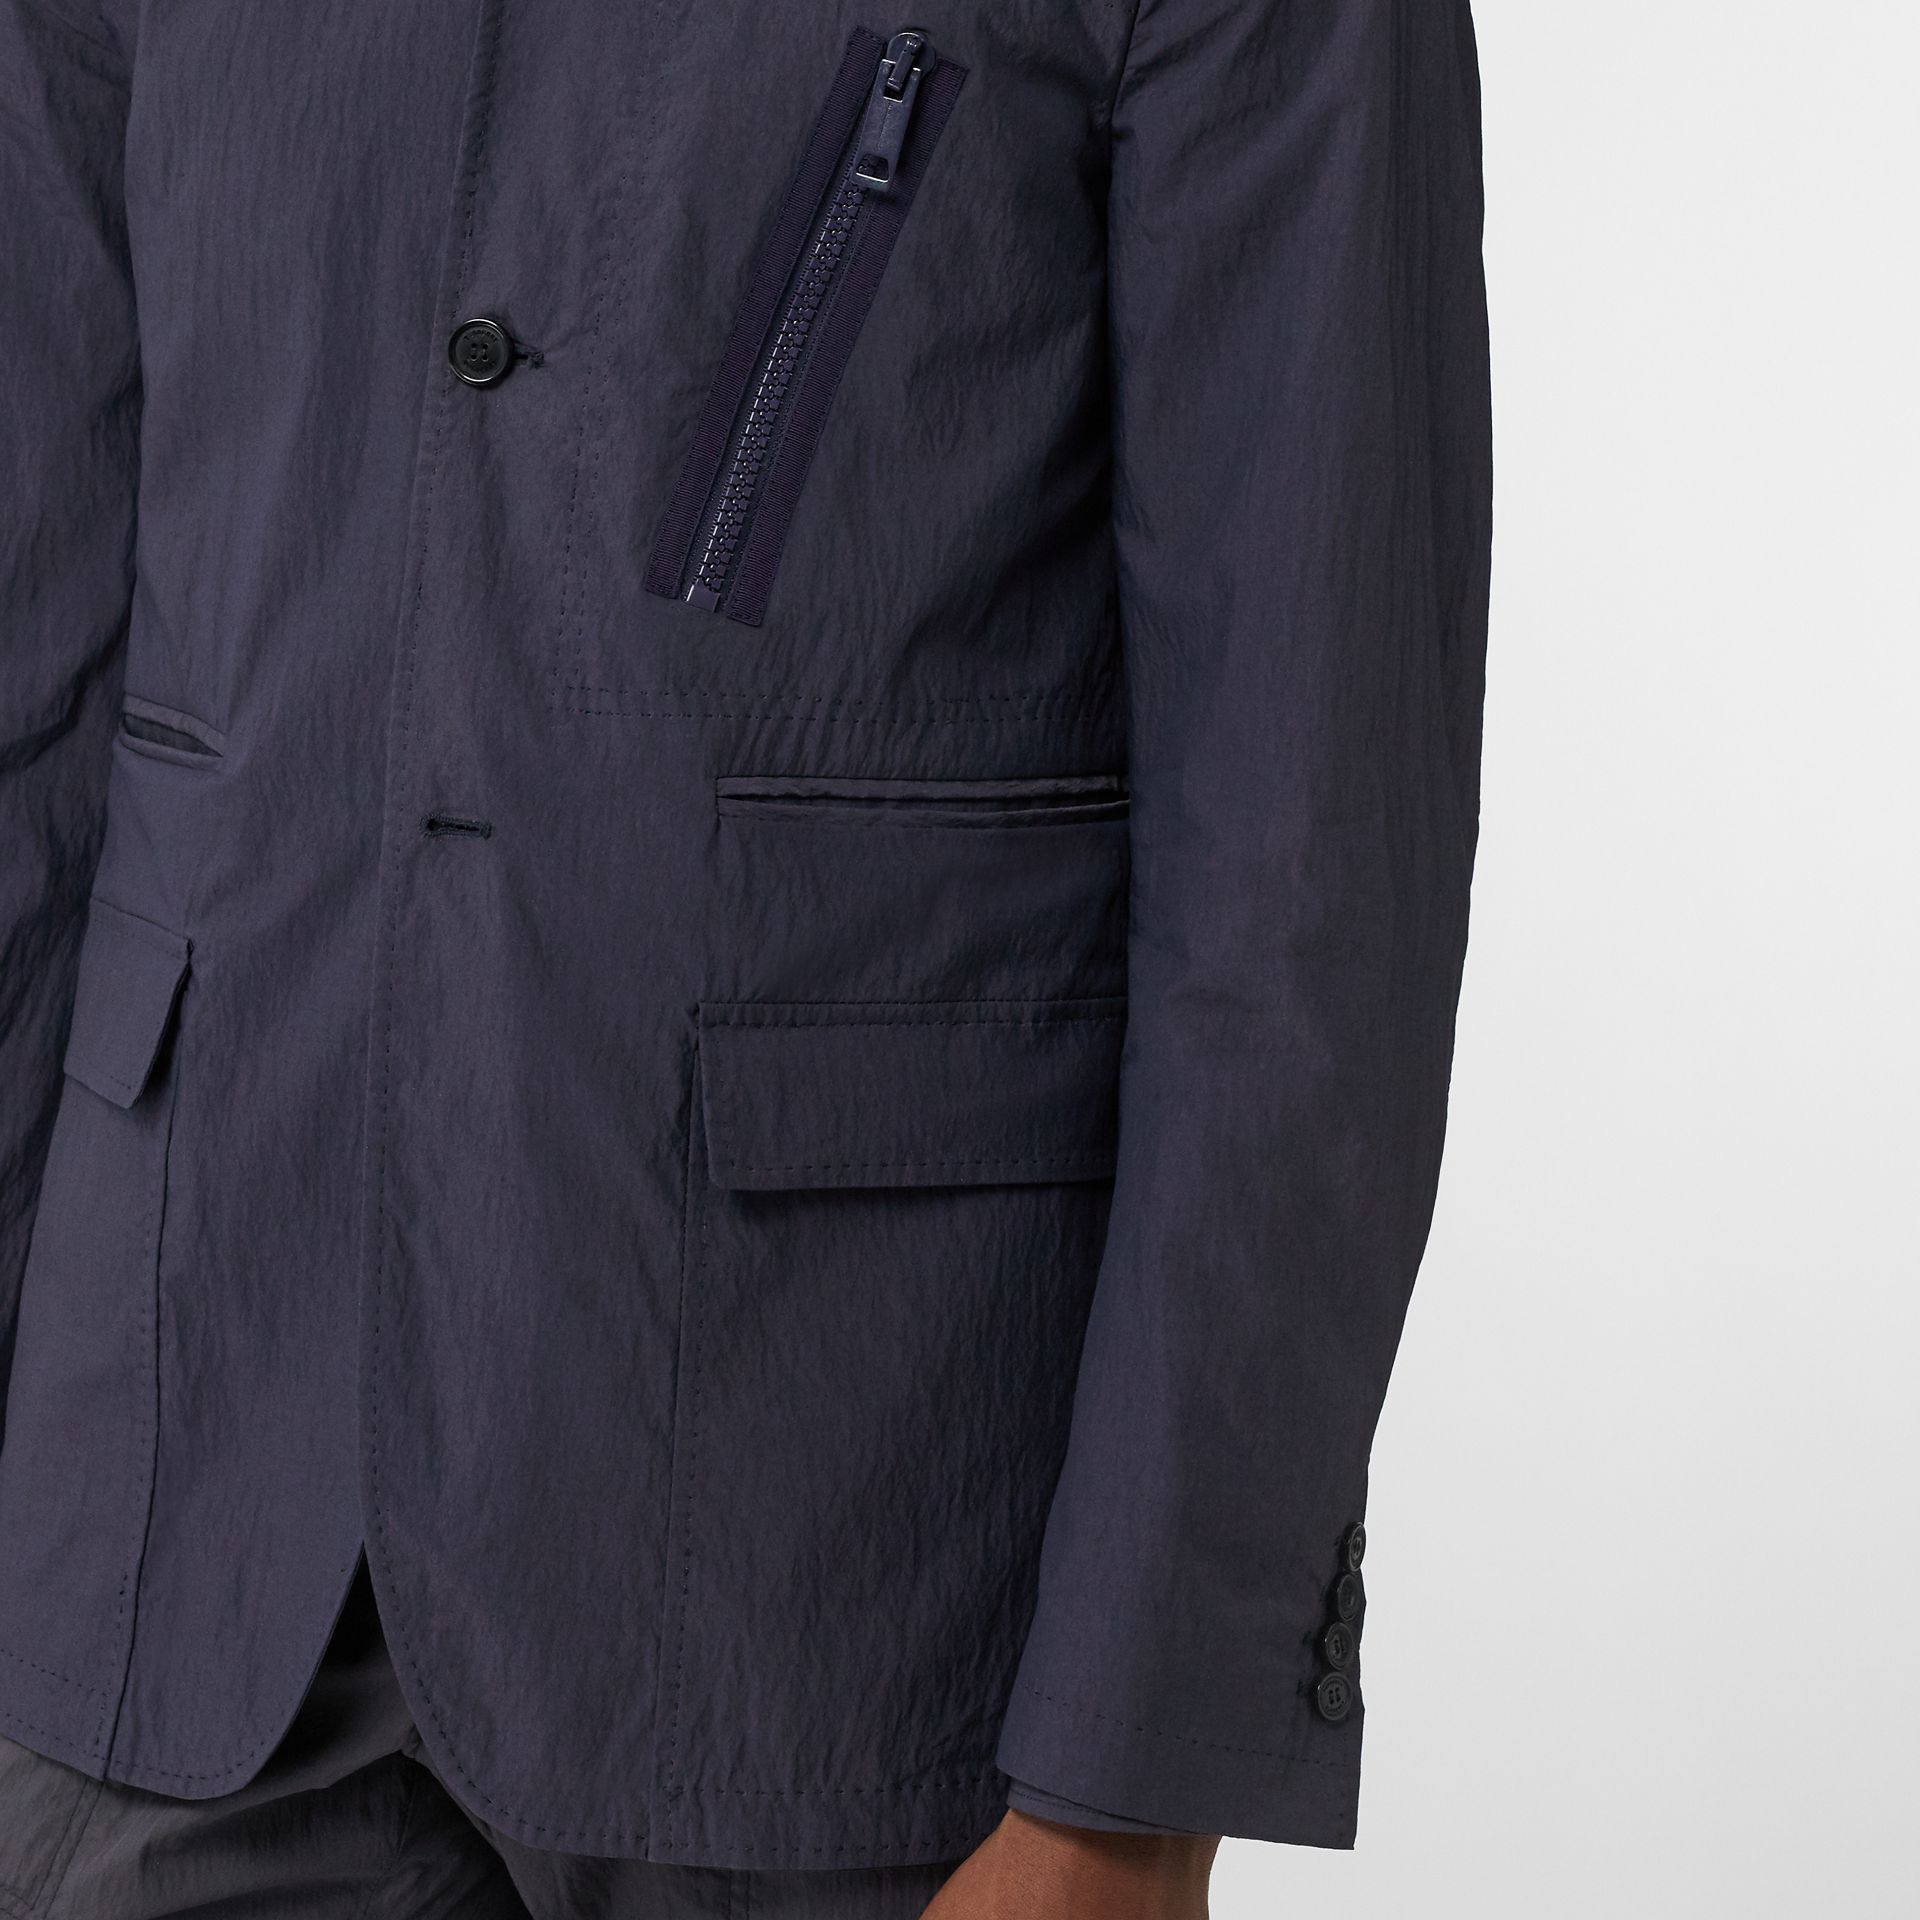 Crinkled Cotton Blend Tailored Jacket in Navy - Men | Burberry United Kingdom - gallery image 4